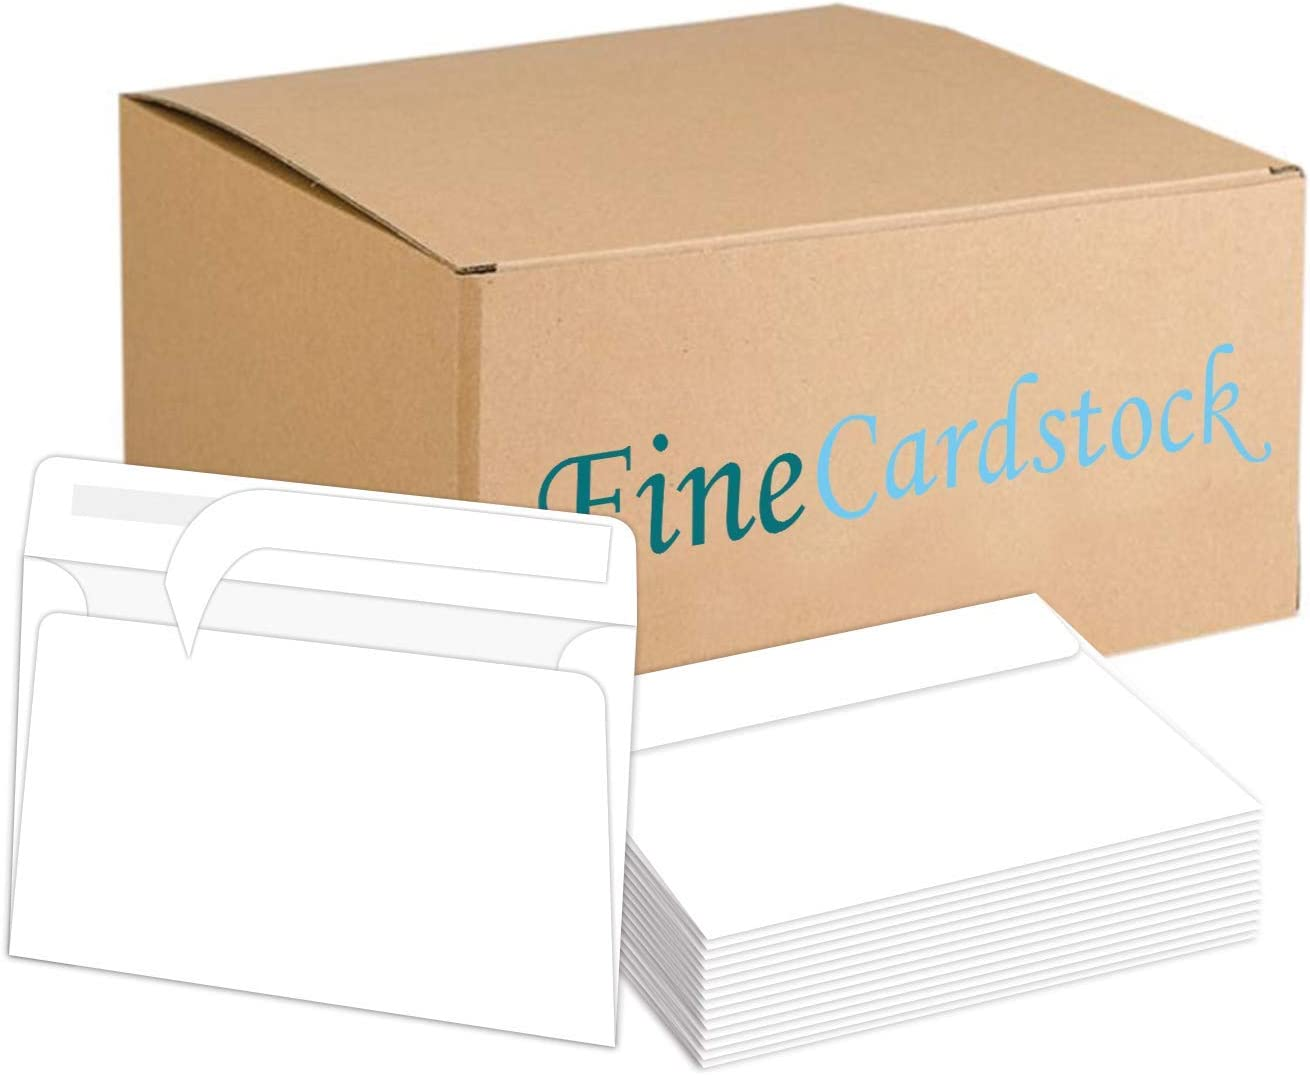 White Peel and Seal - A7 Envelopes - Fits 5 x 7 Invitations/Greeting Cards - 500 Envelopes Per Pack